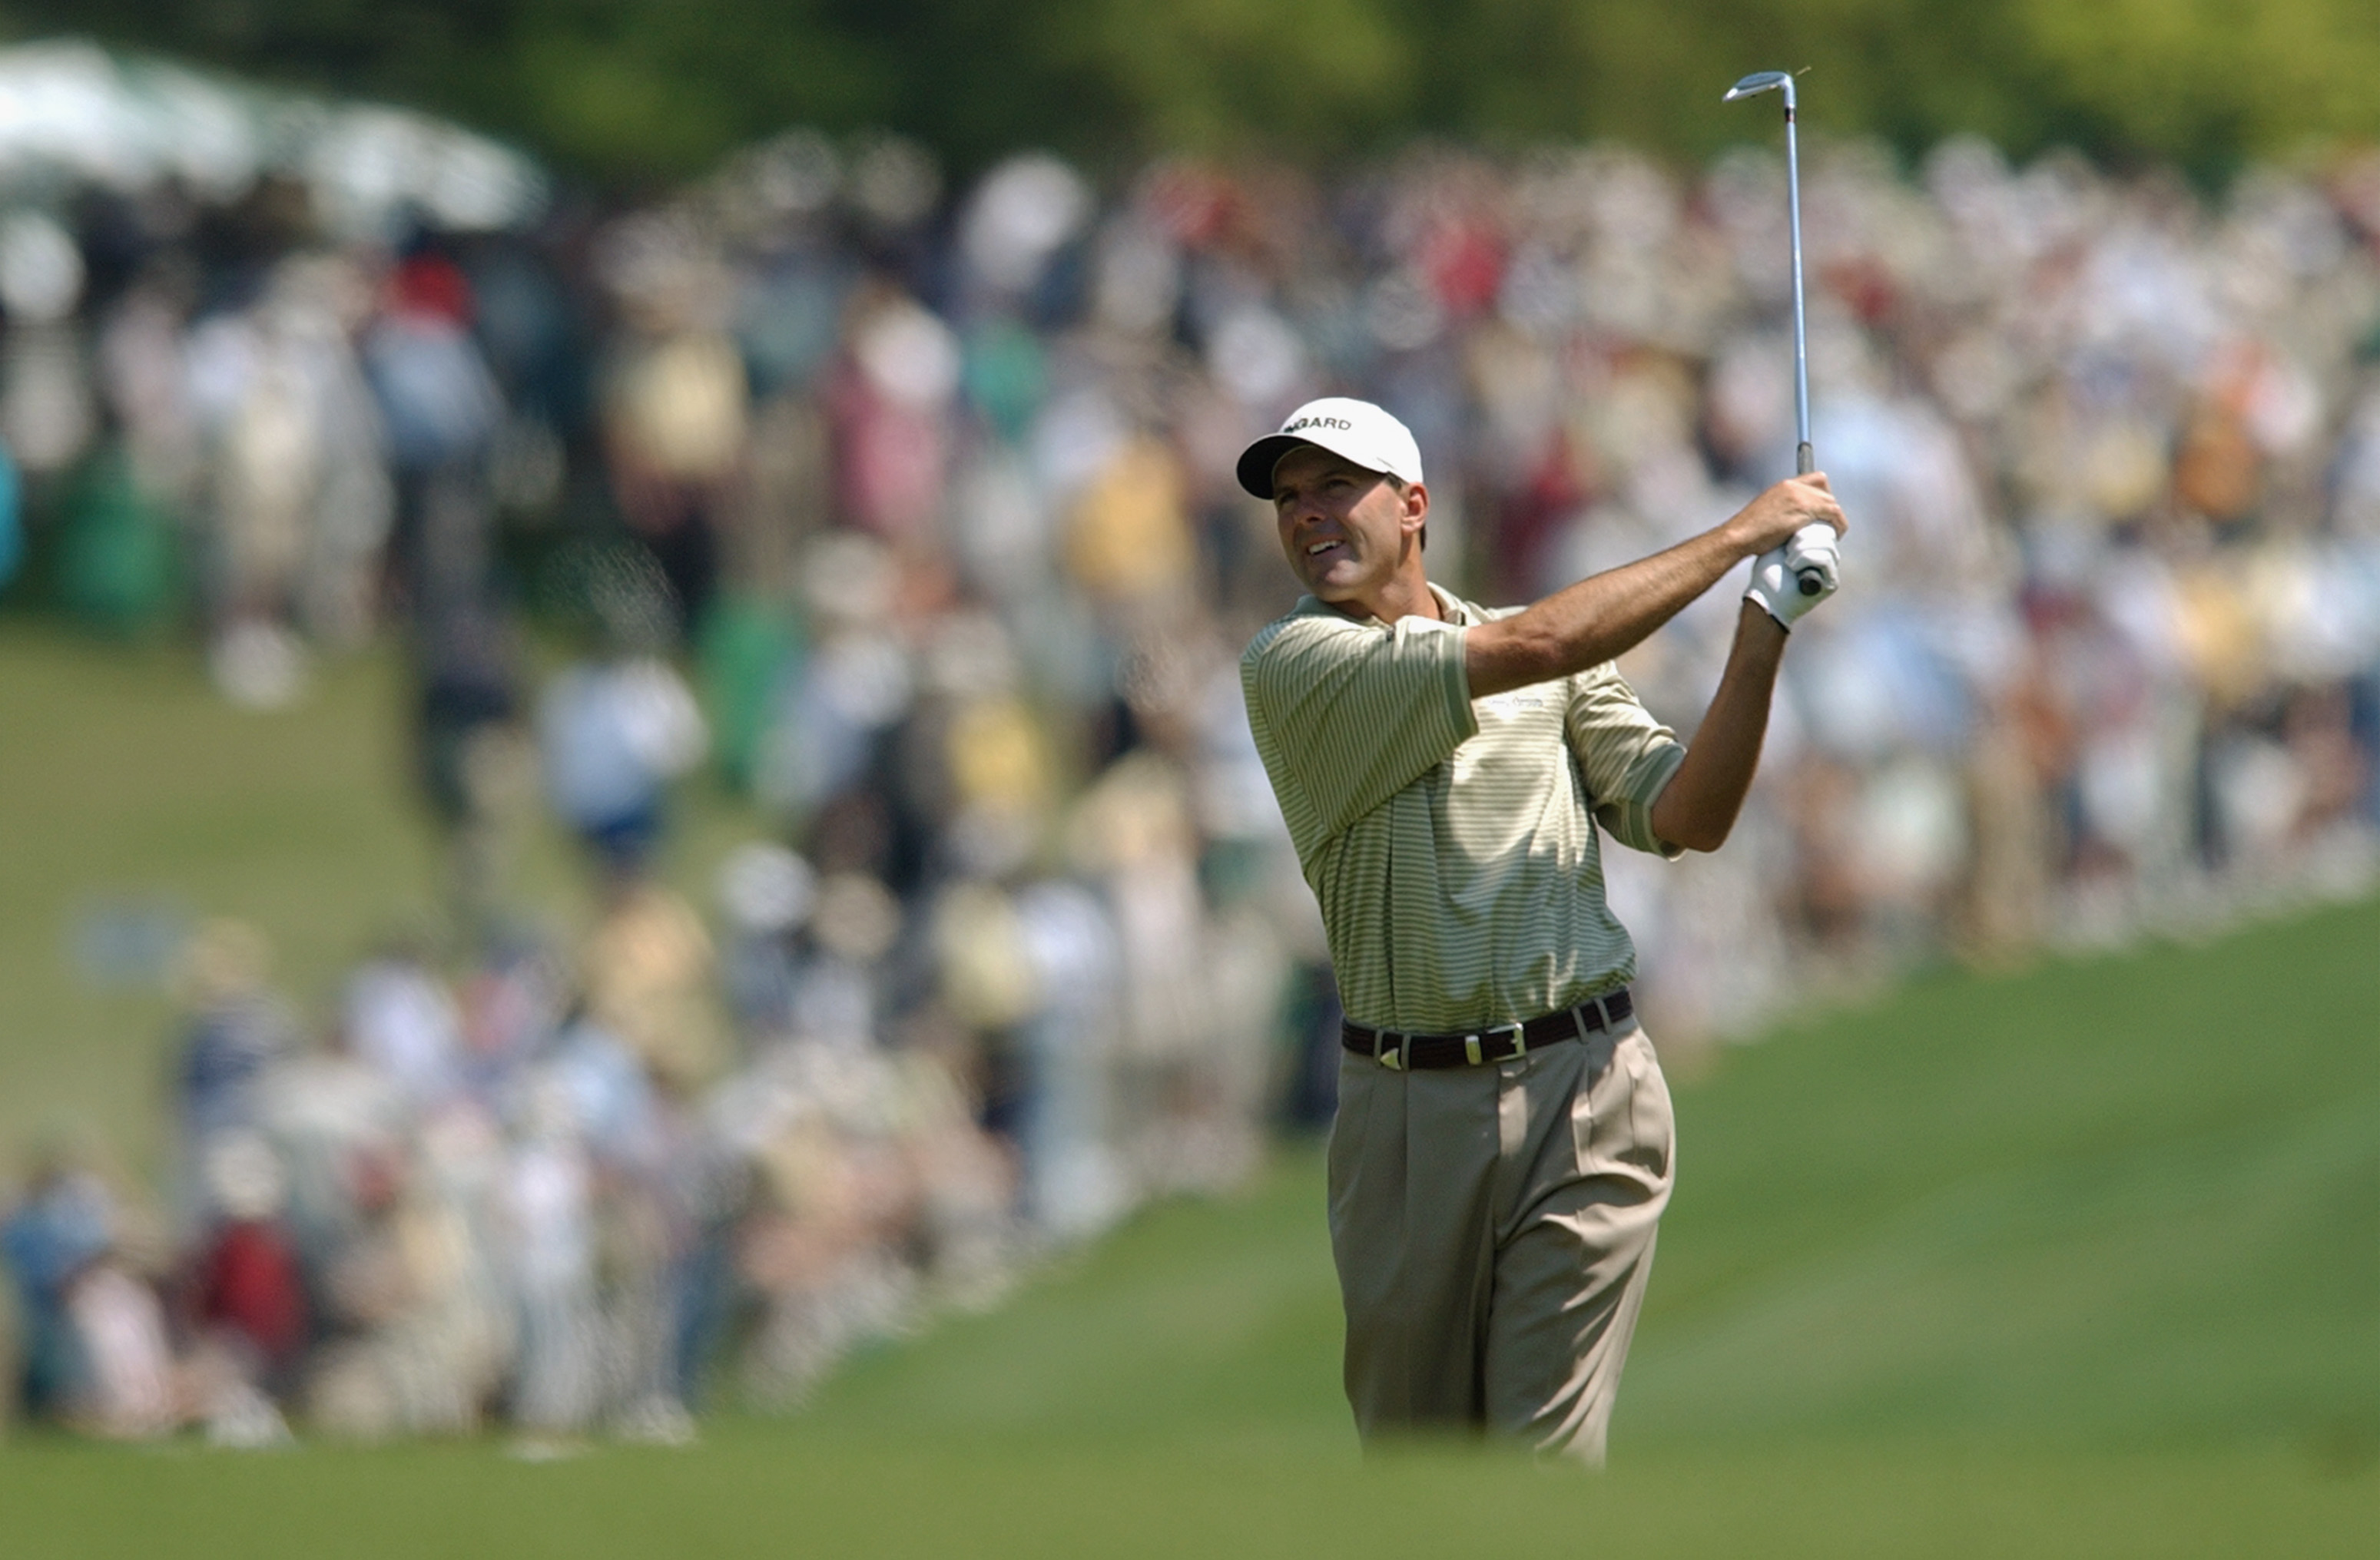 AUGUSTA, GA - APRIL 13:  Len Mattiace of the USA plays his second shot on the 1st hole during the final round of the 2003 Masters Tournament at the Augusta National Golf Club in Augusta, Georgia on April 13, 2003. (Photo by Harry How/Getty Images)